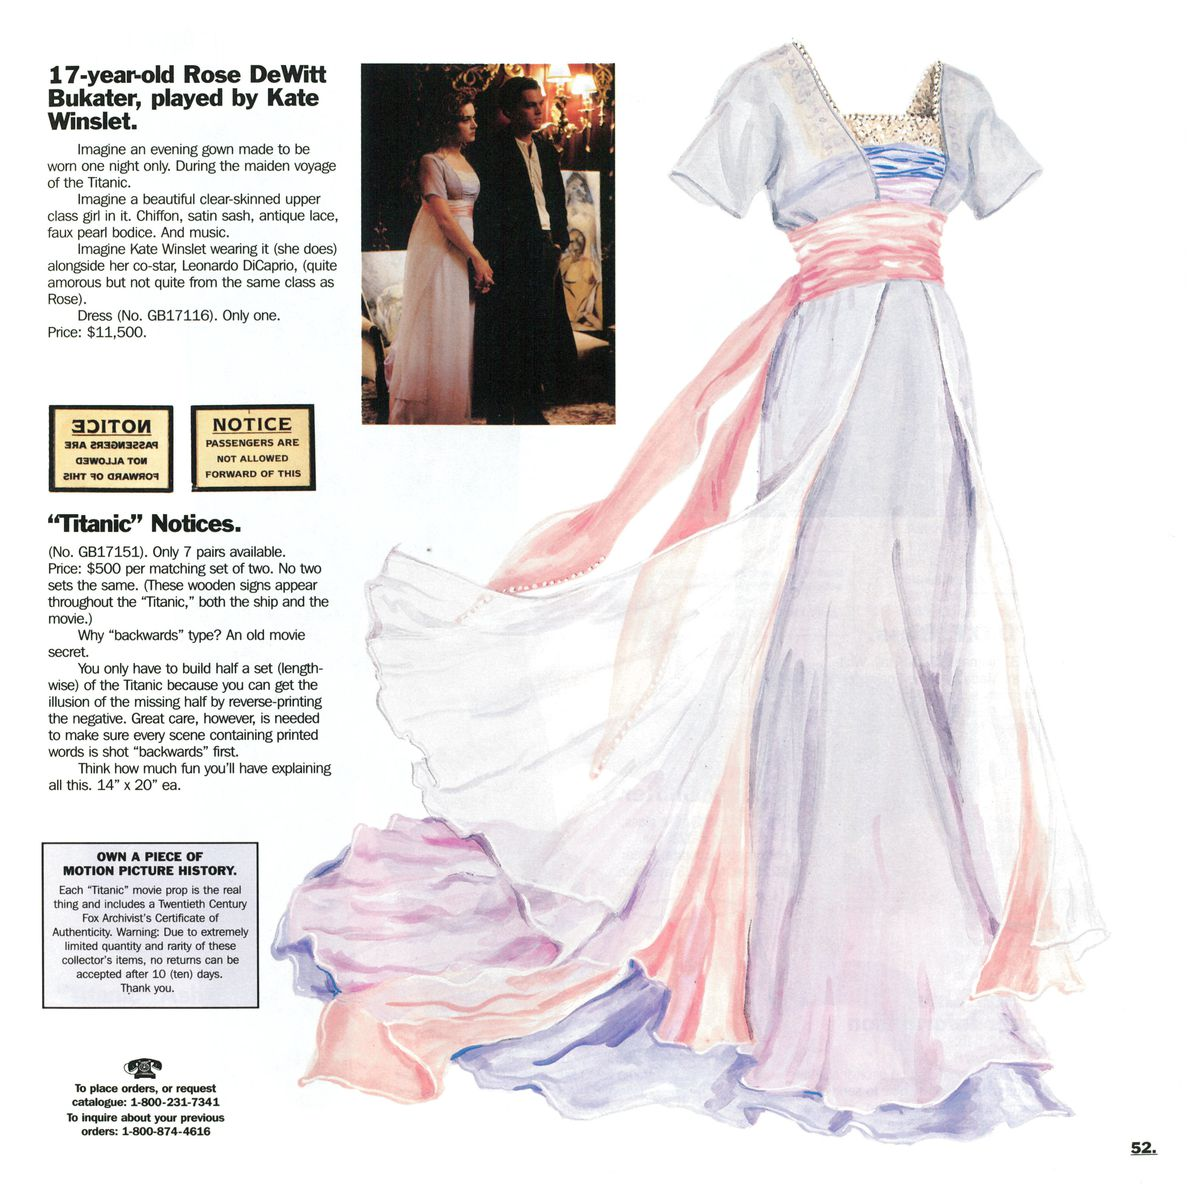 A J. Peterman Company catalog featuring a dress worn by Kate Winslet in Titanic.